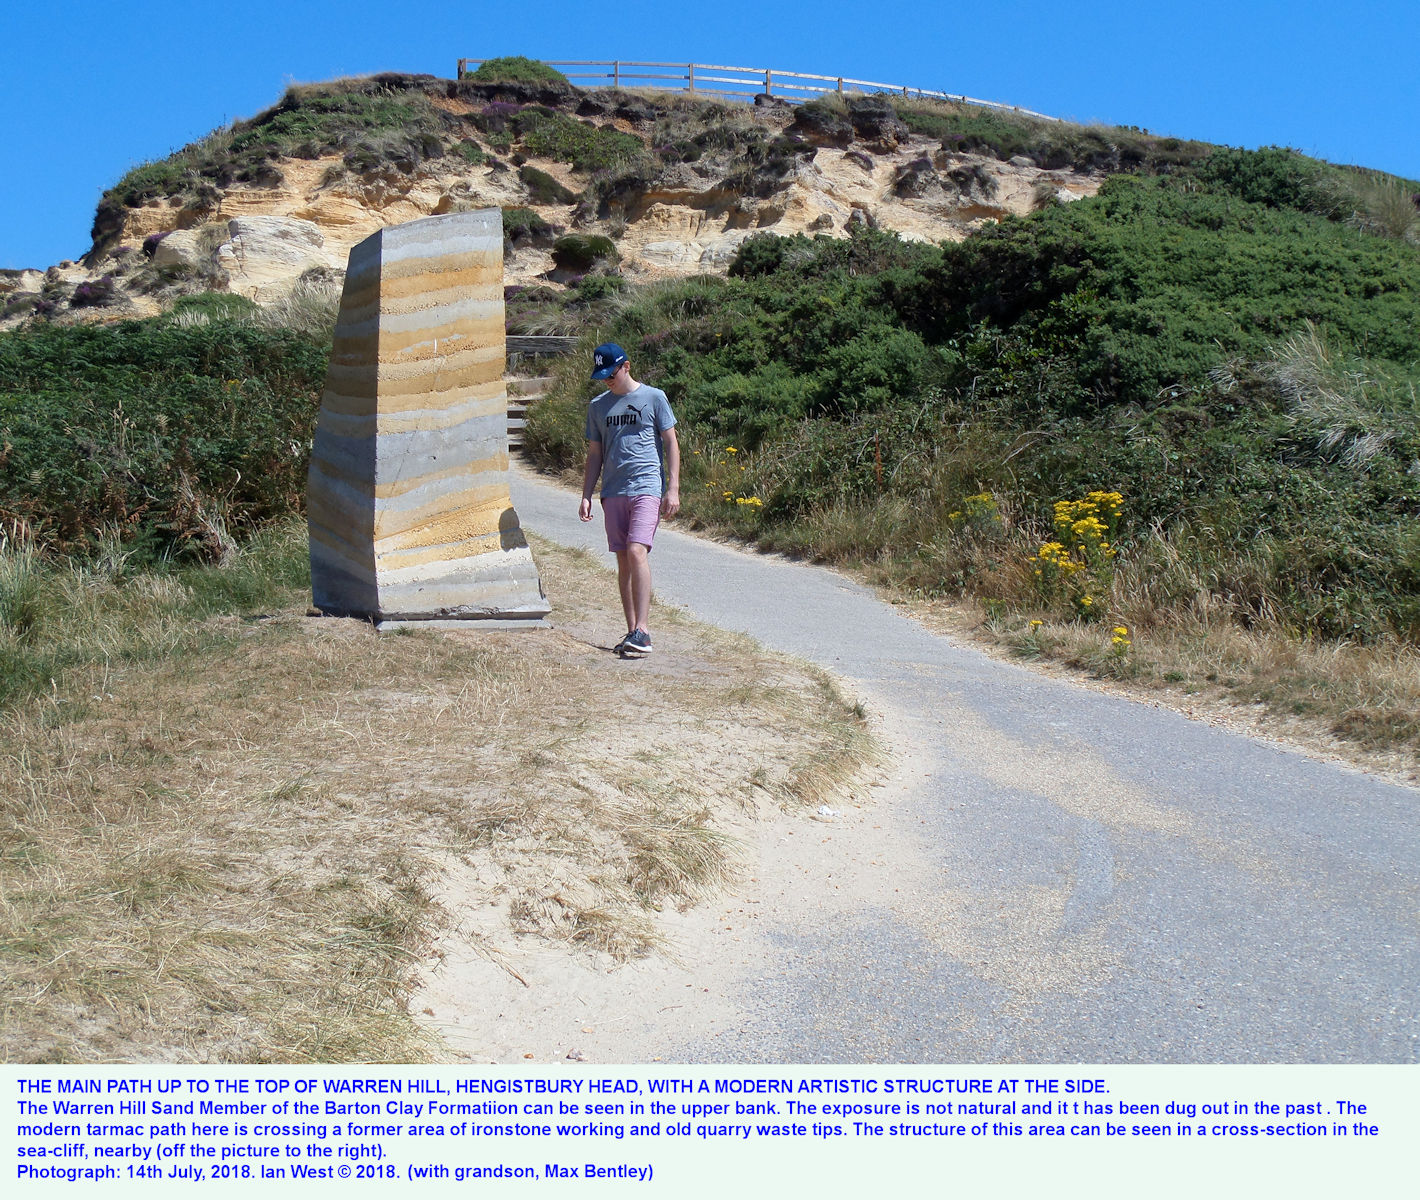 The main path to the highest point of Warren Hill, Hengistbury Head, with an artwork by the side of the path, 14th July 2018